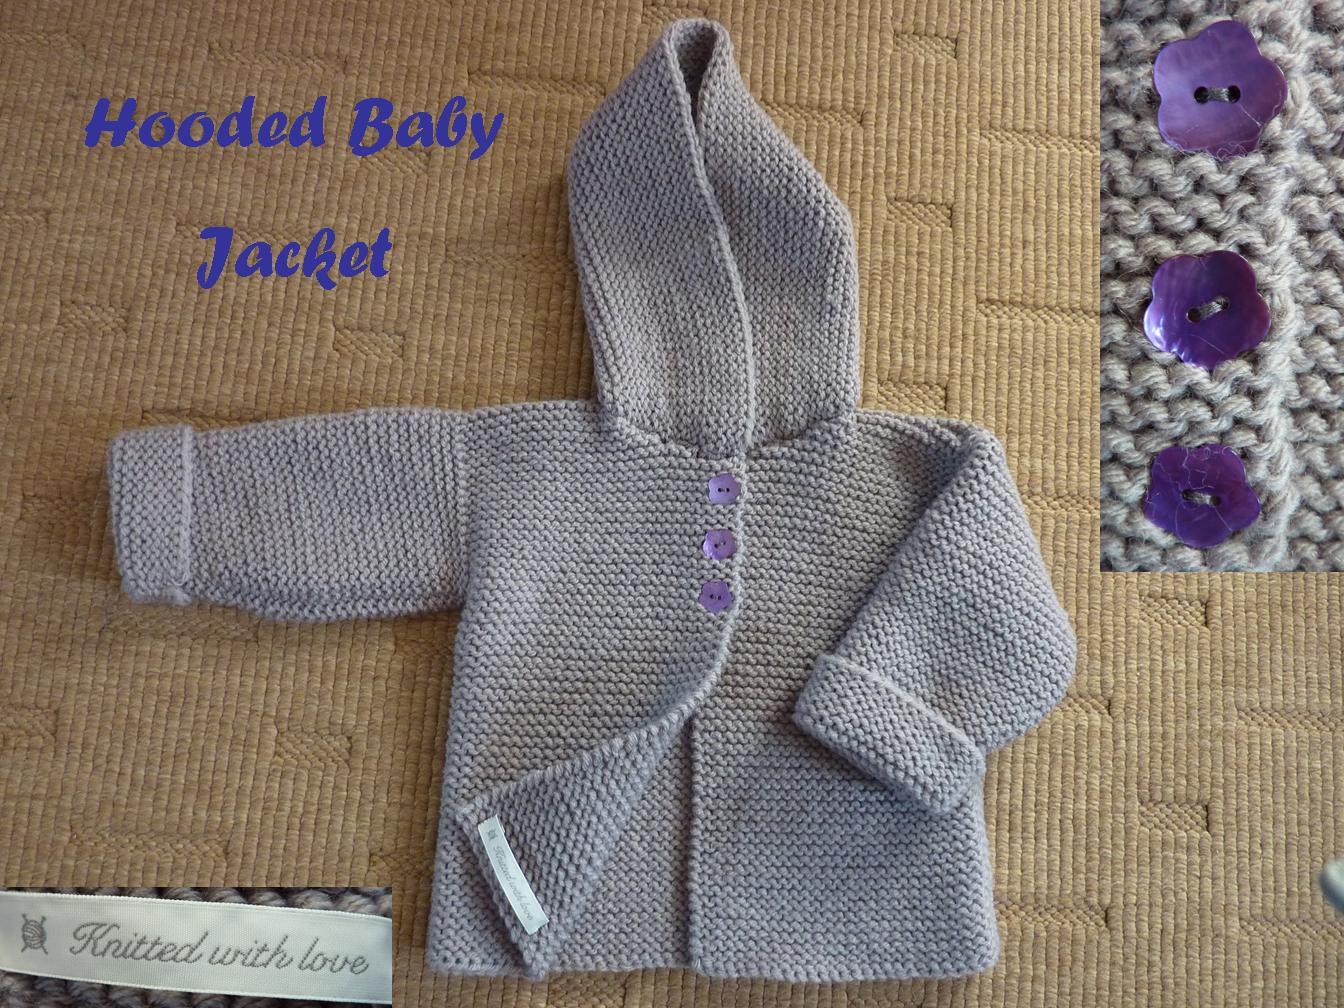 Knitting Pattern Hooded Jacket : Knitting Pattern Hooded Sweater - Cashmere Sweater England